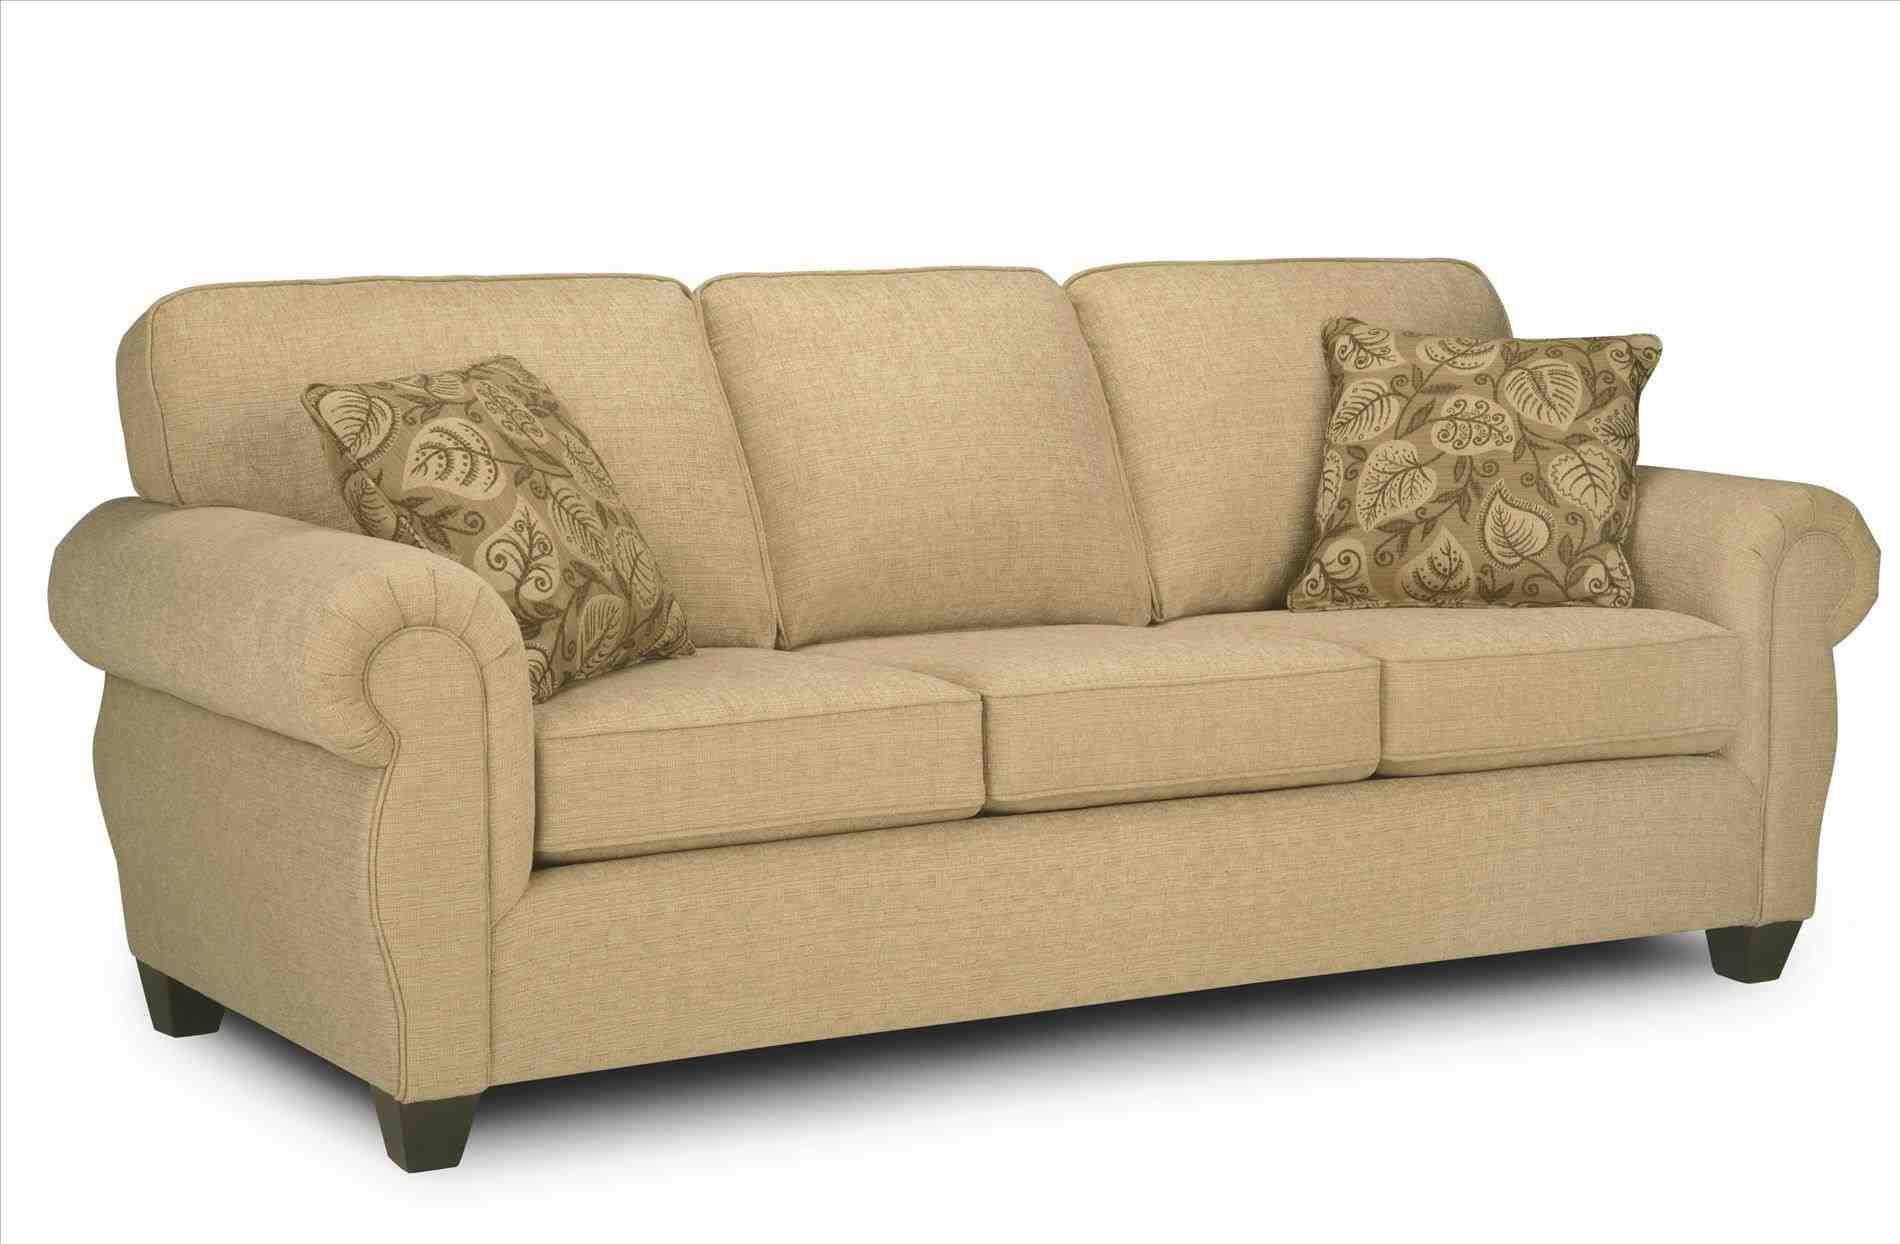 Modern Sofas Mississauga Sectional Sofa Bed Toronto Modern Sofa Beds Sleeper Sofas